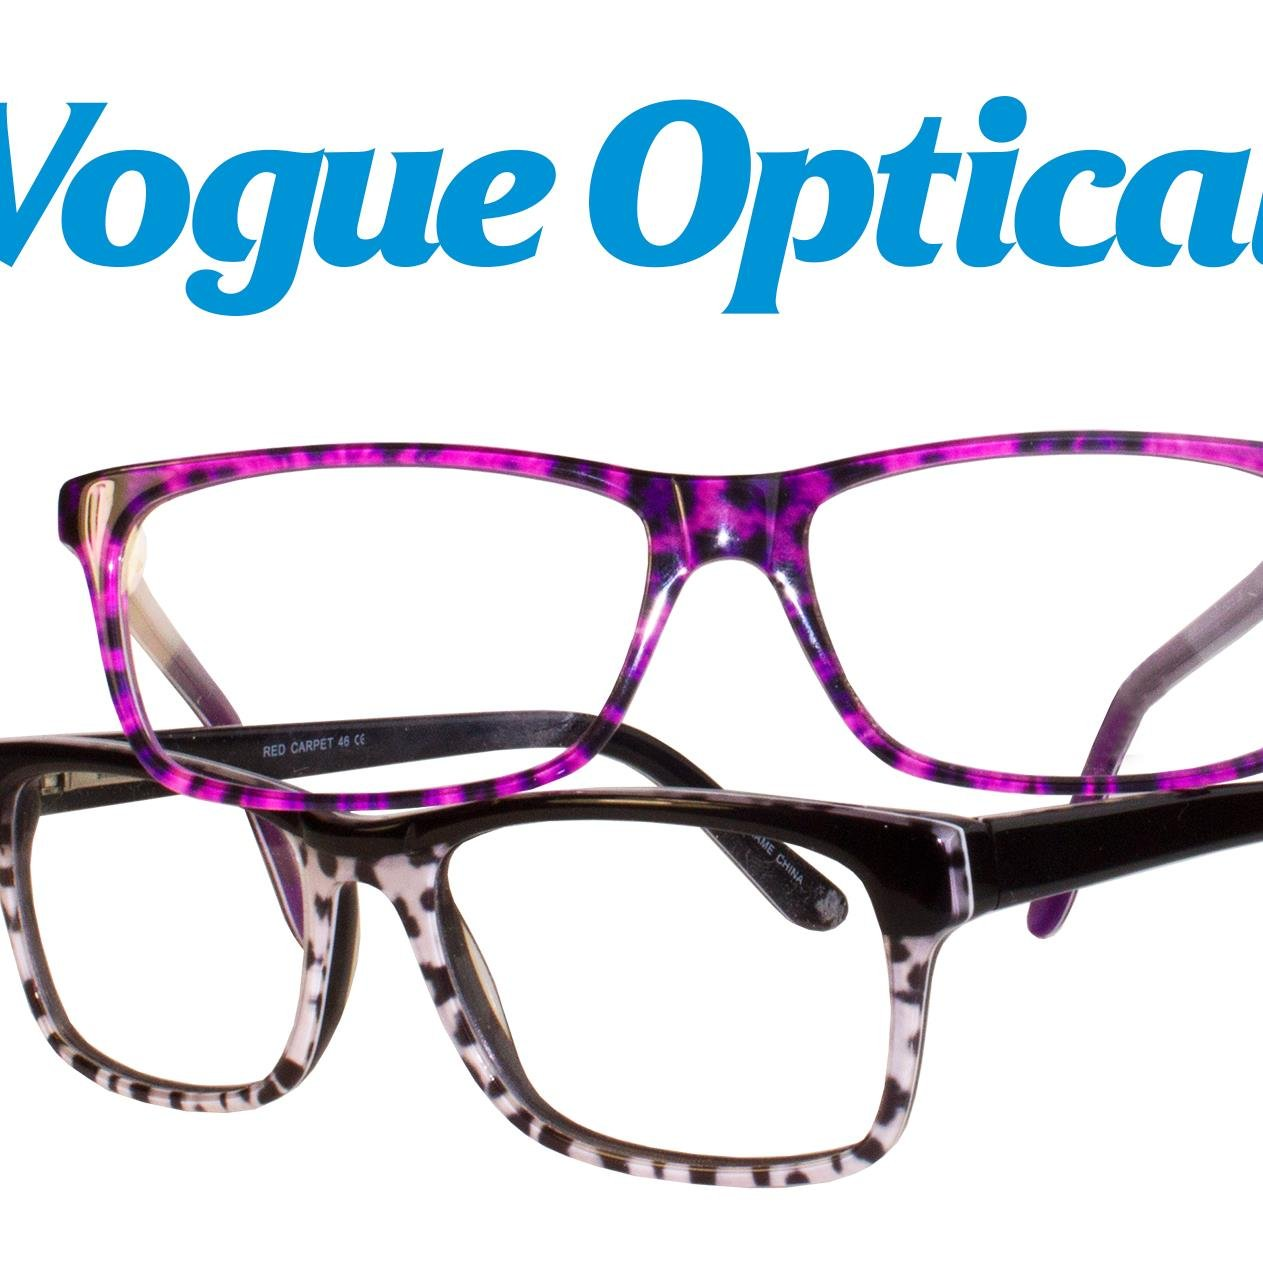 Vogue Optical (@VogueOptical) | Twitter